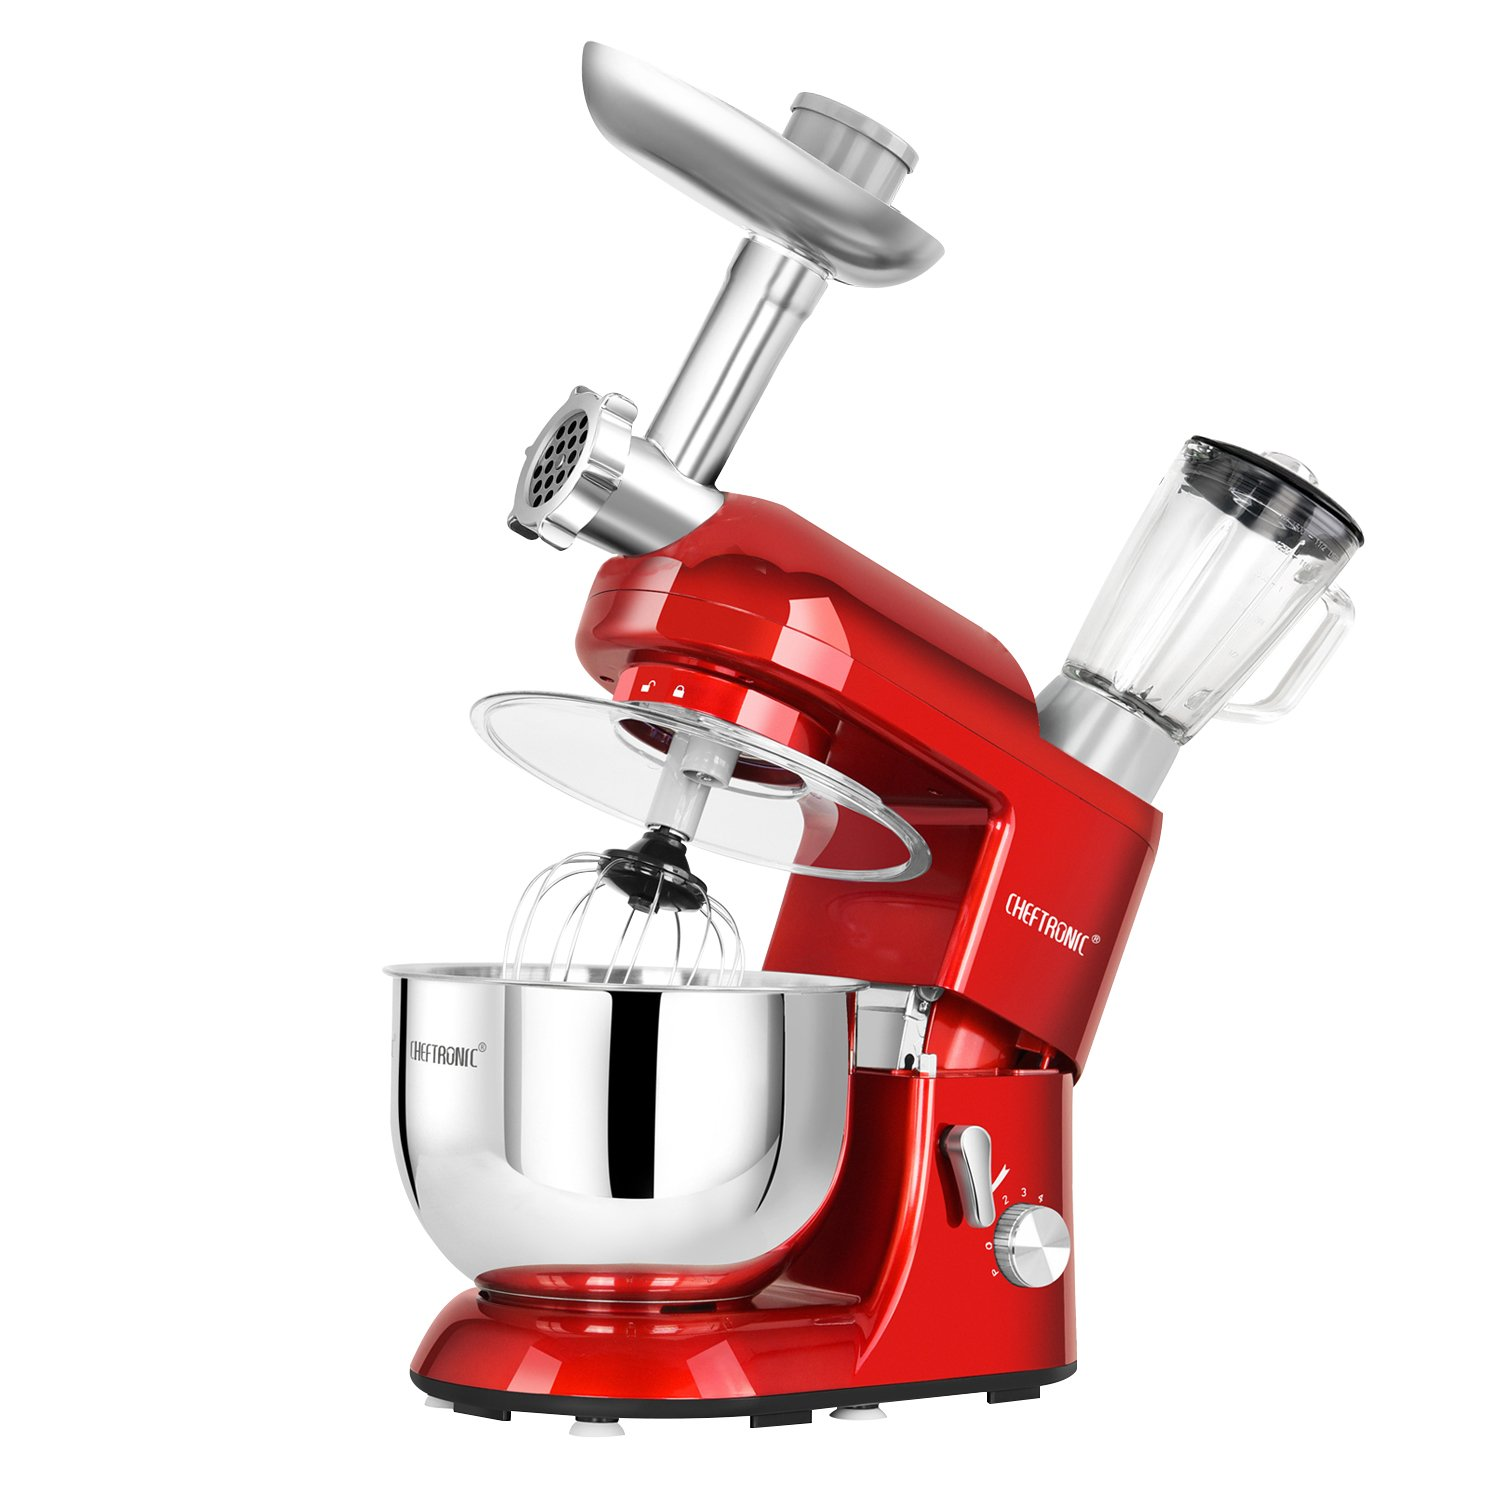 CHEFTRONIC Stand Mixer Tilt-Head 120V/650W Electric Stand Mixer with 5.5QT Stainless Bowl, 6 Speed Multifunctional Kitchen Mixer, Meat grinder, Sausage stuffer, pasta dies and Juice Blender by CHEFTRONIC (Image #2)